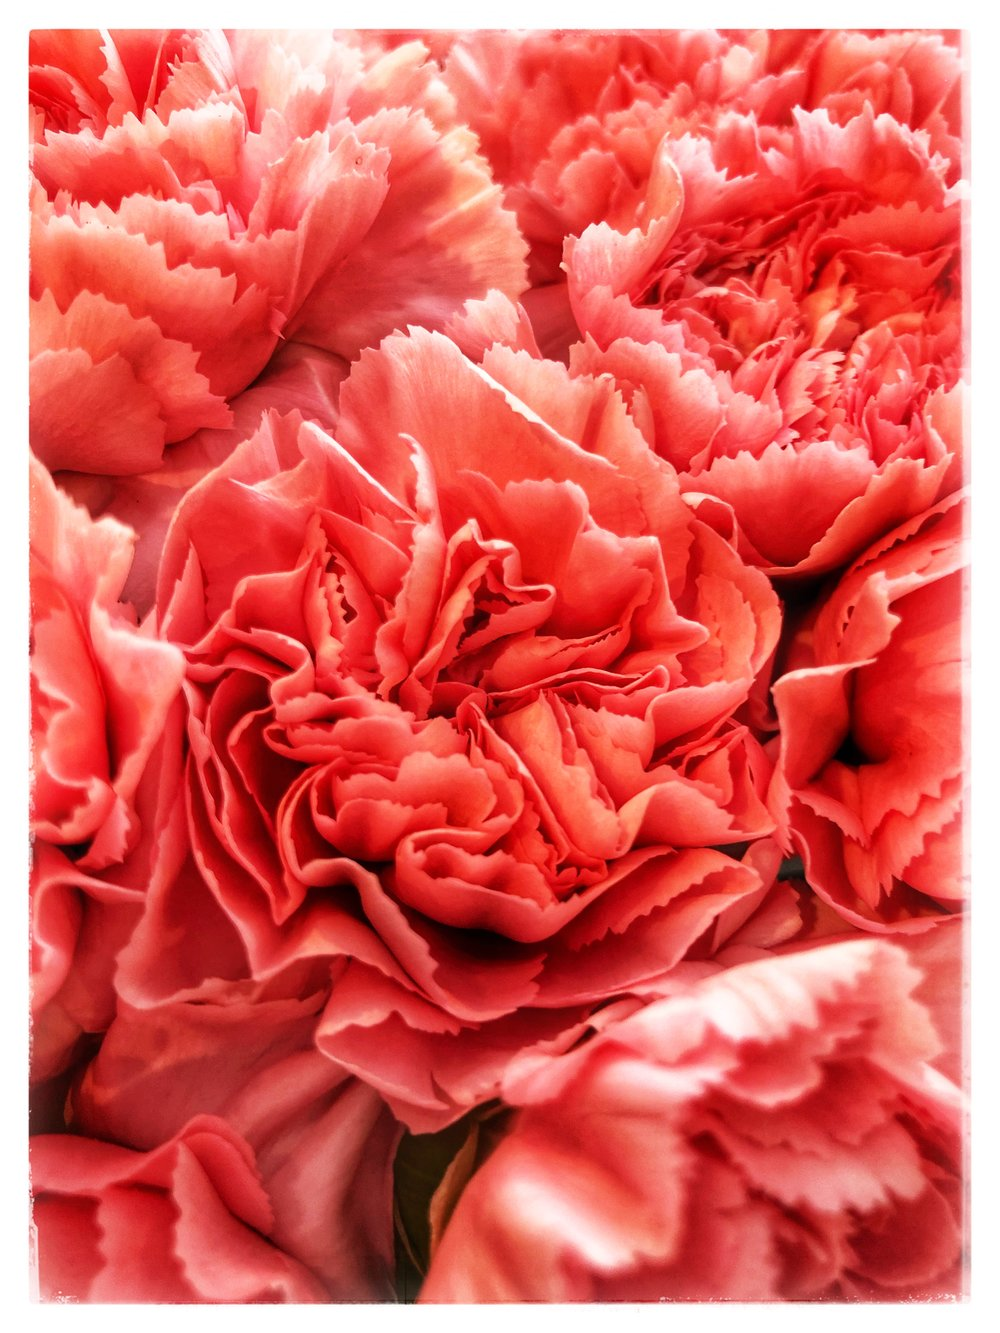 Spectacular pink carnations at Russo's. Don't overlook this simple and elegant flower!